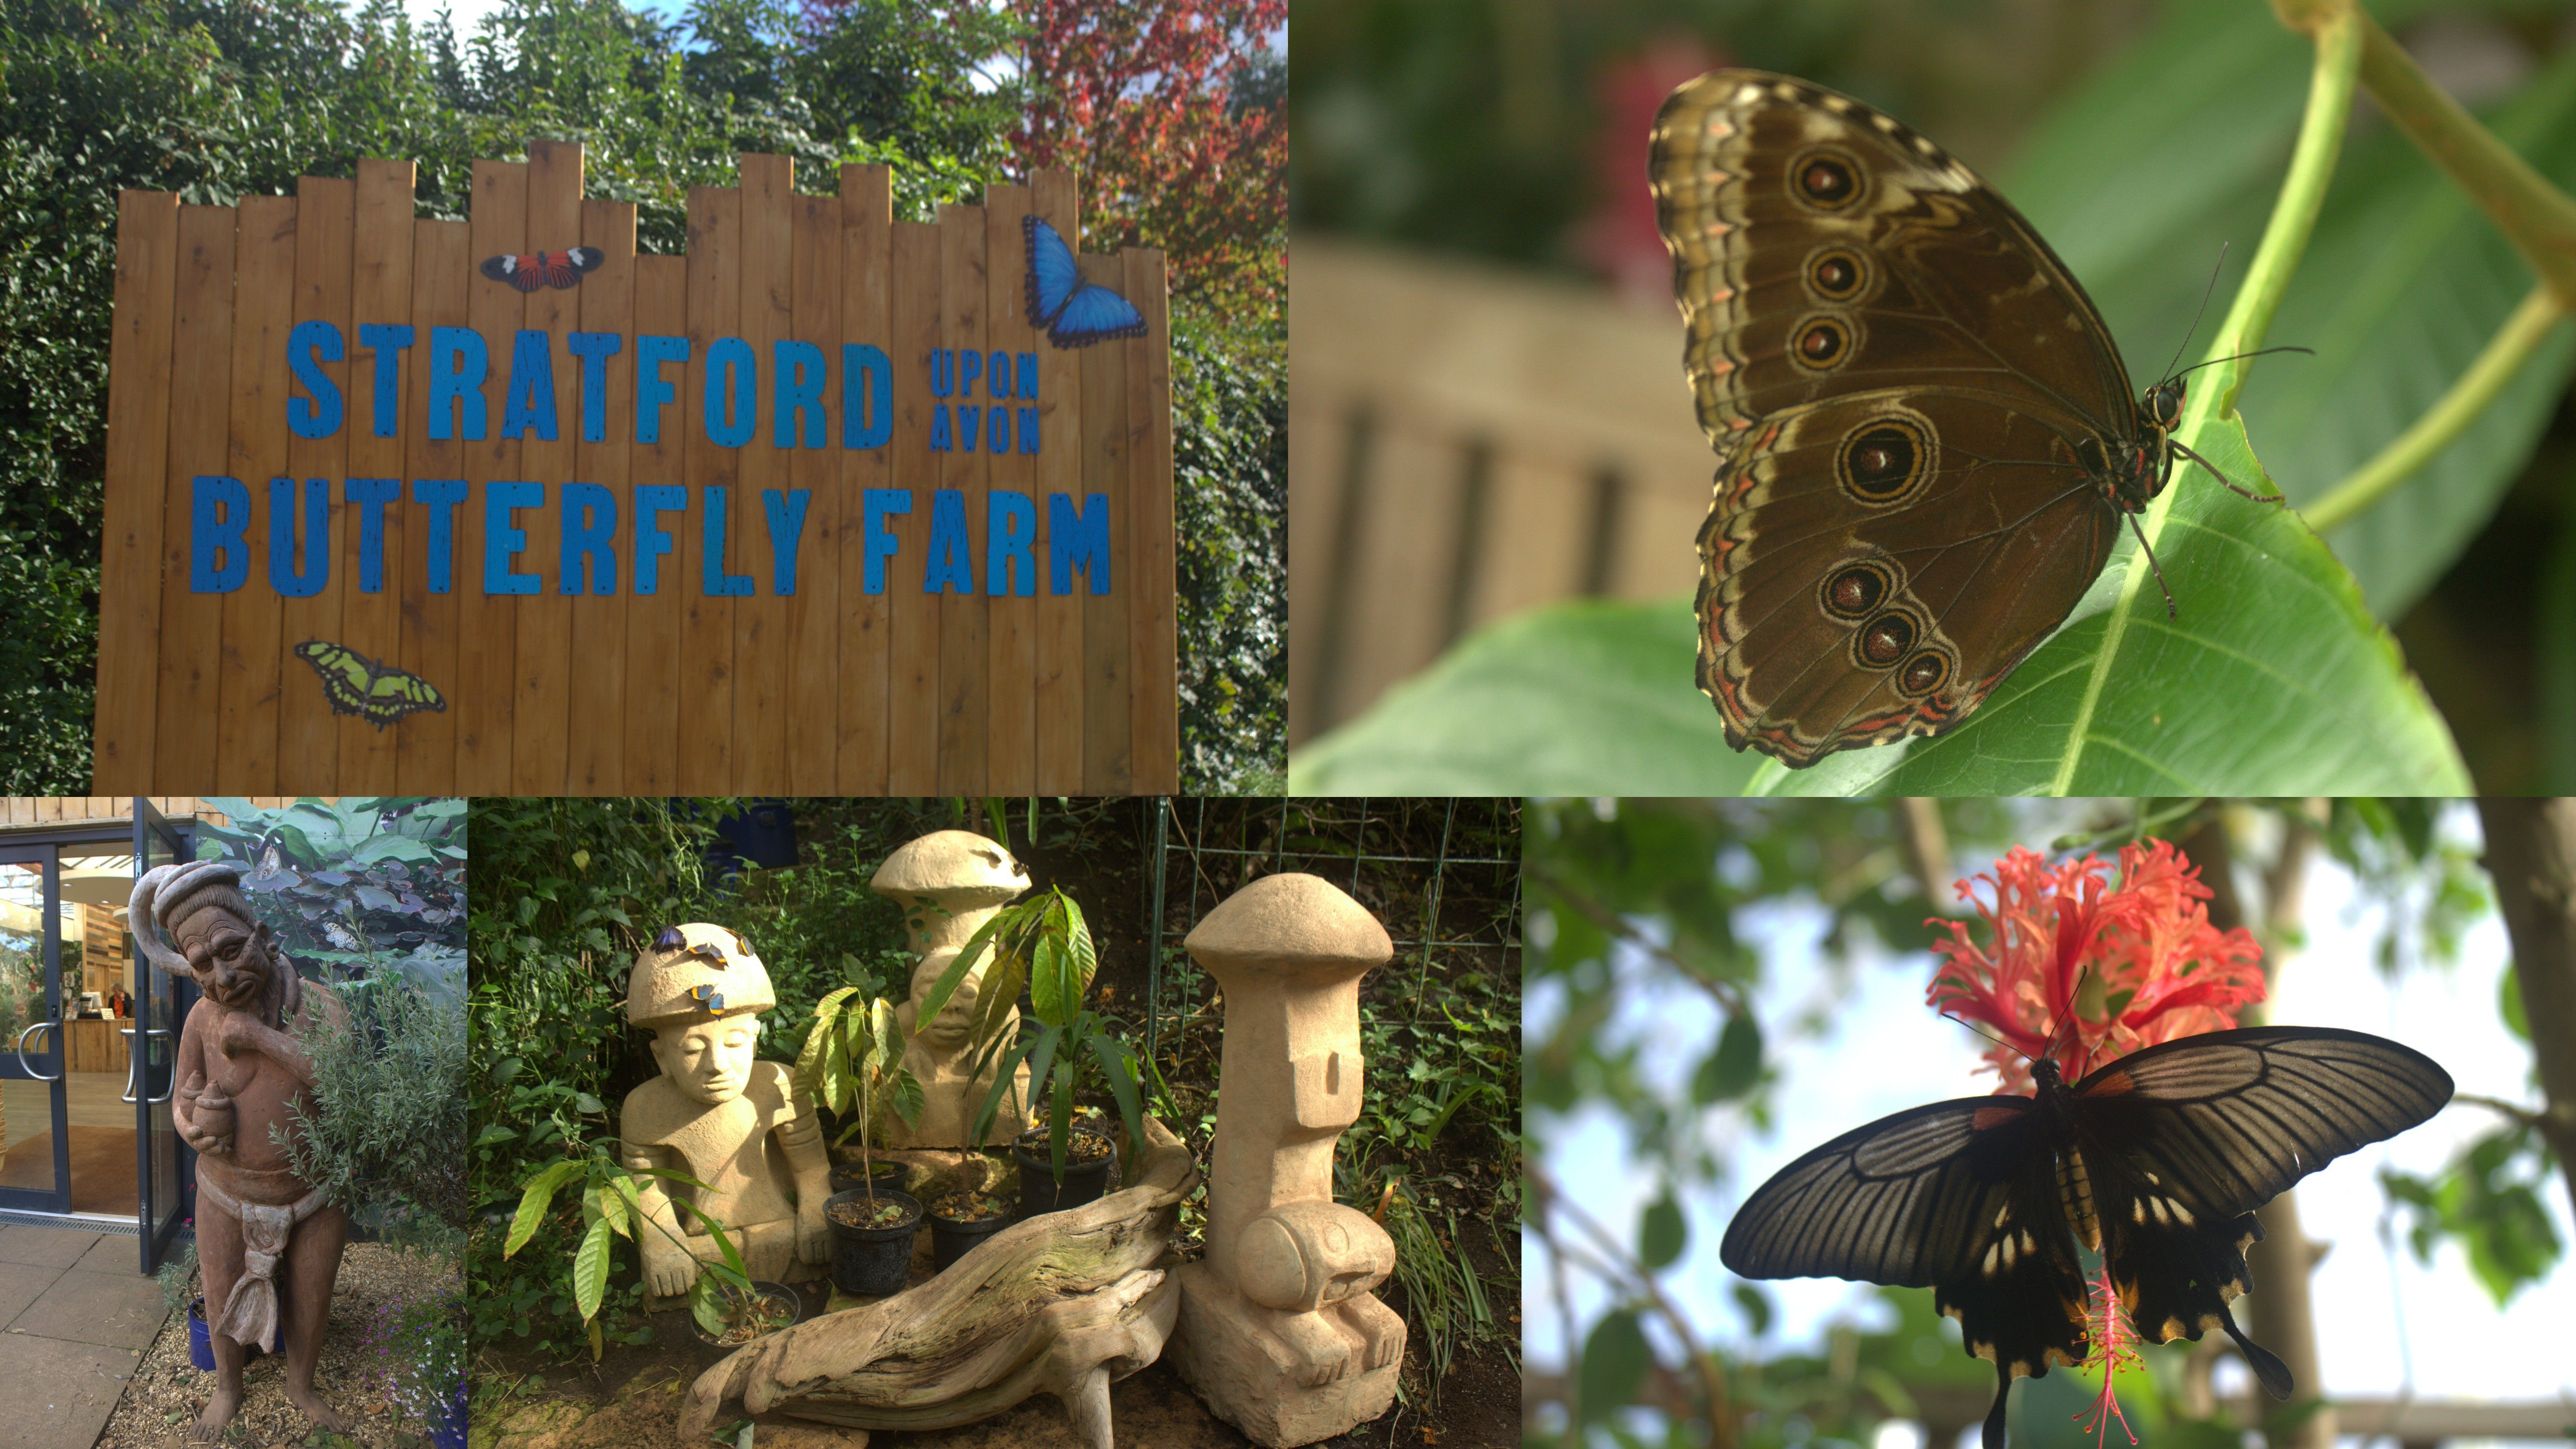 Butterfly Farm, Stratford-upon-Avon